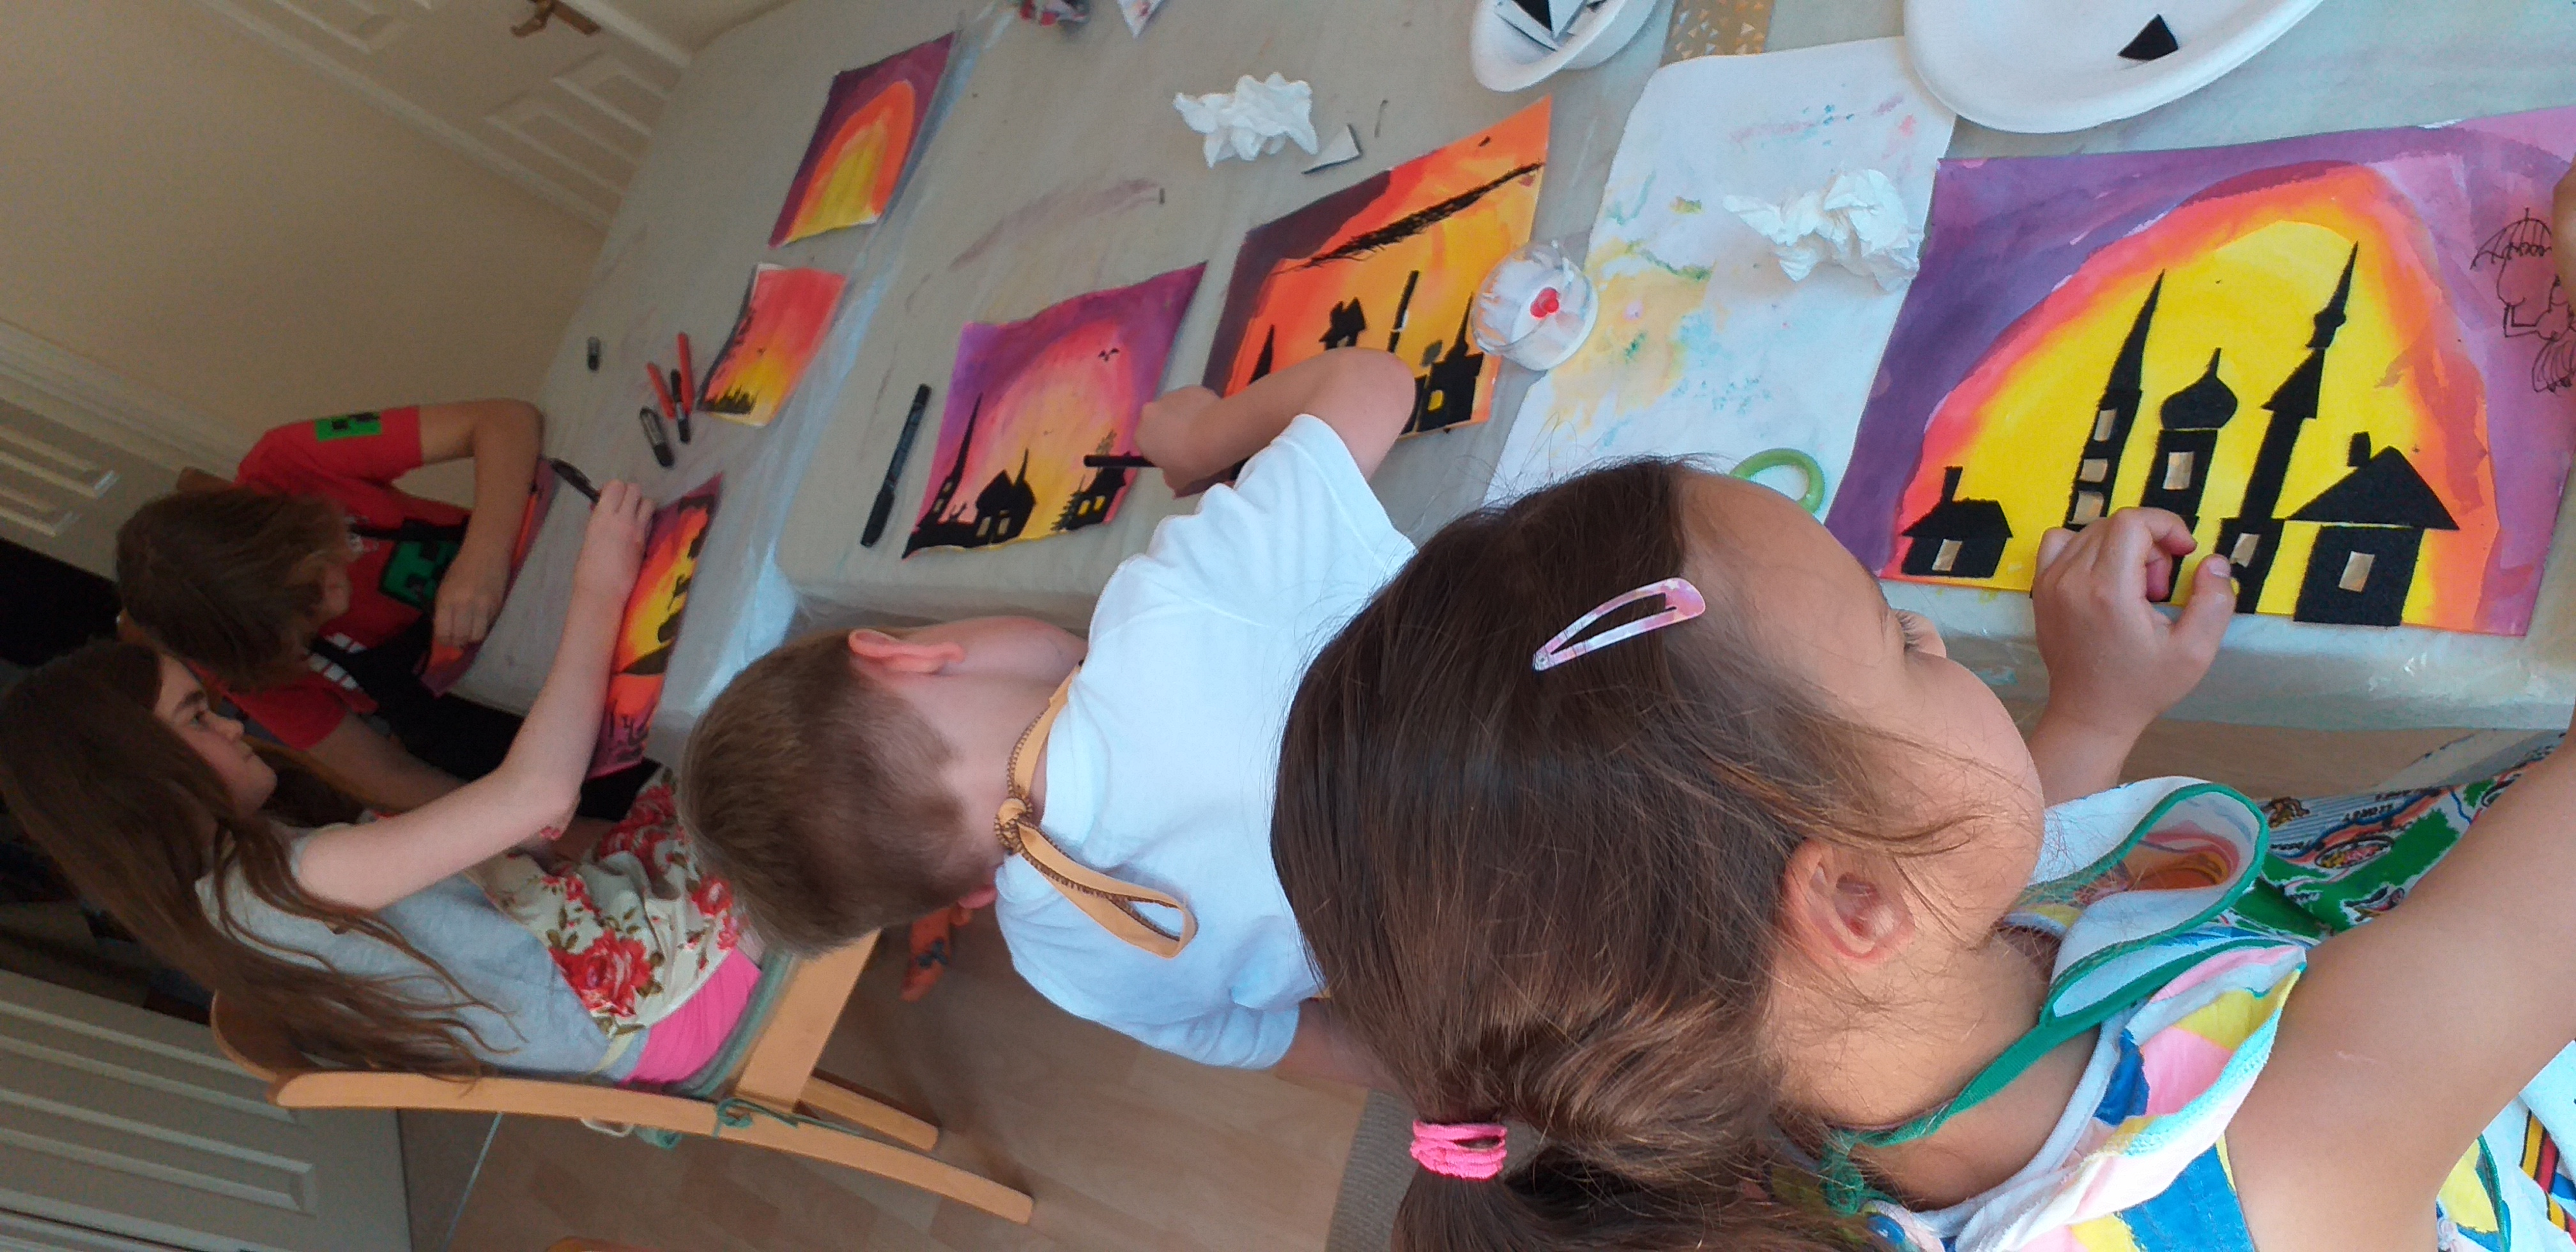 Summer holiday activities for children at Magic Wool Art and Craft Studio in Kidderminster Worcestershire